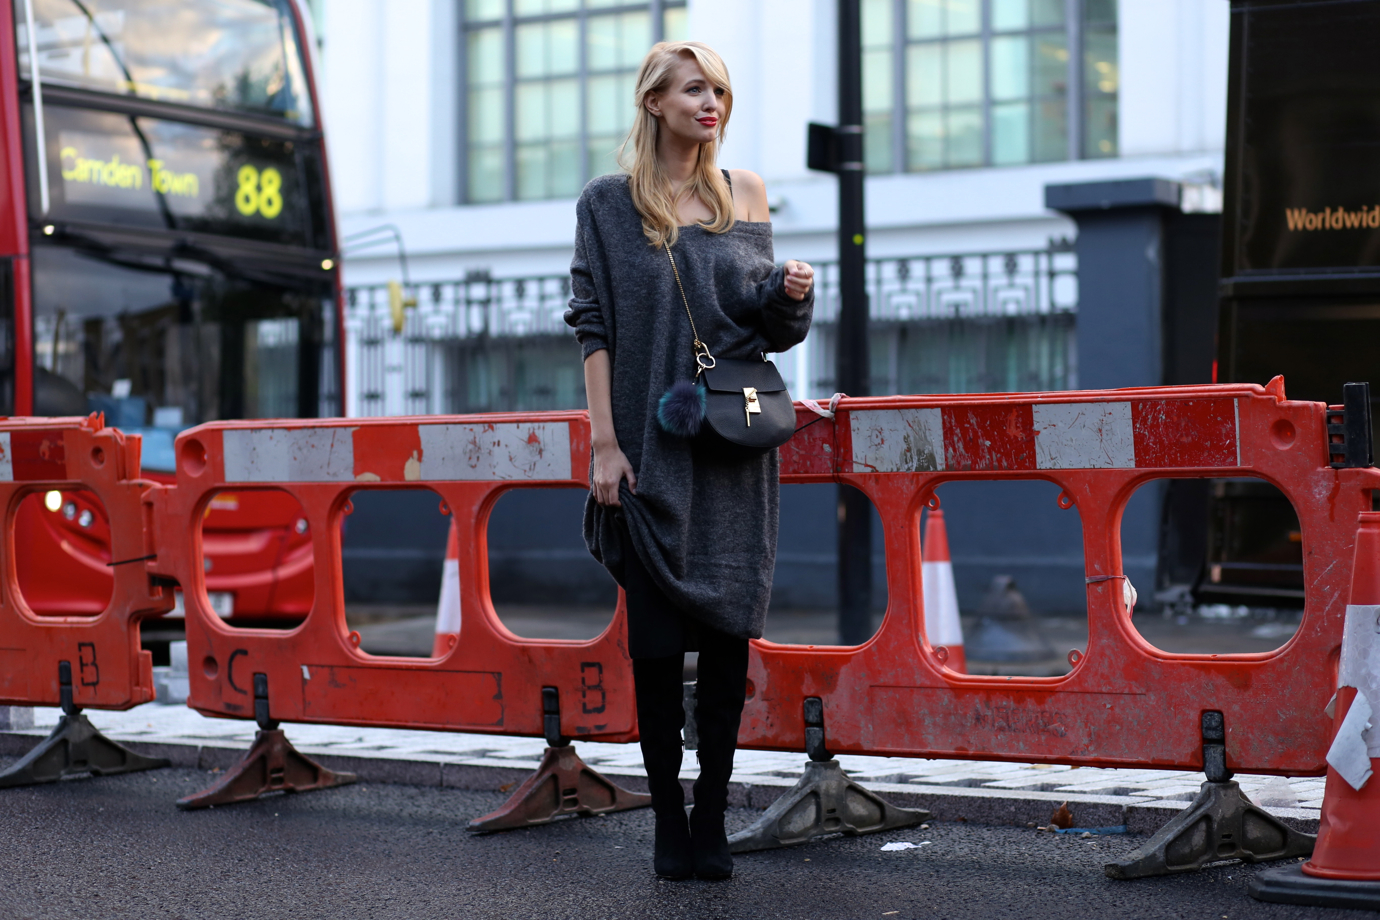 Streets_of_london_5